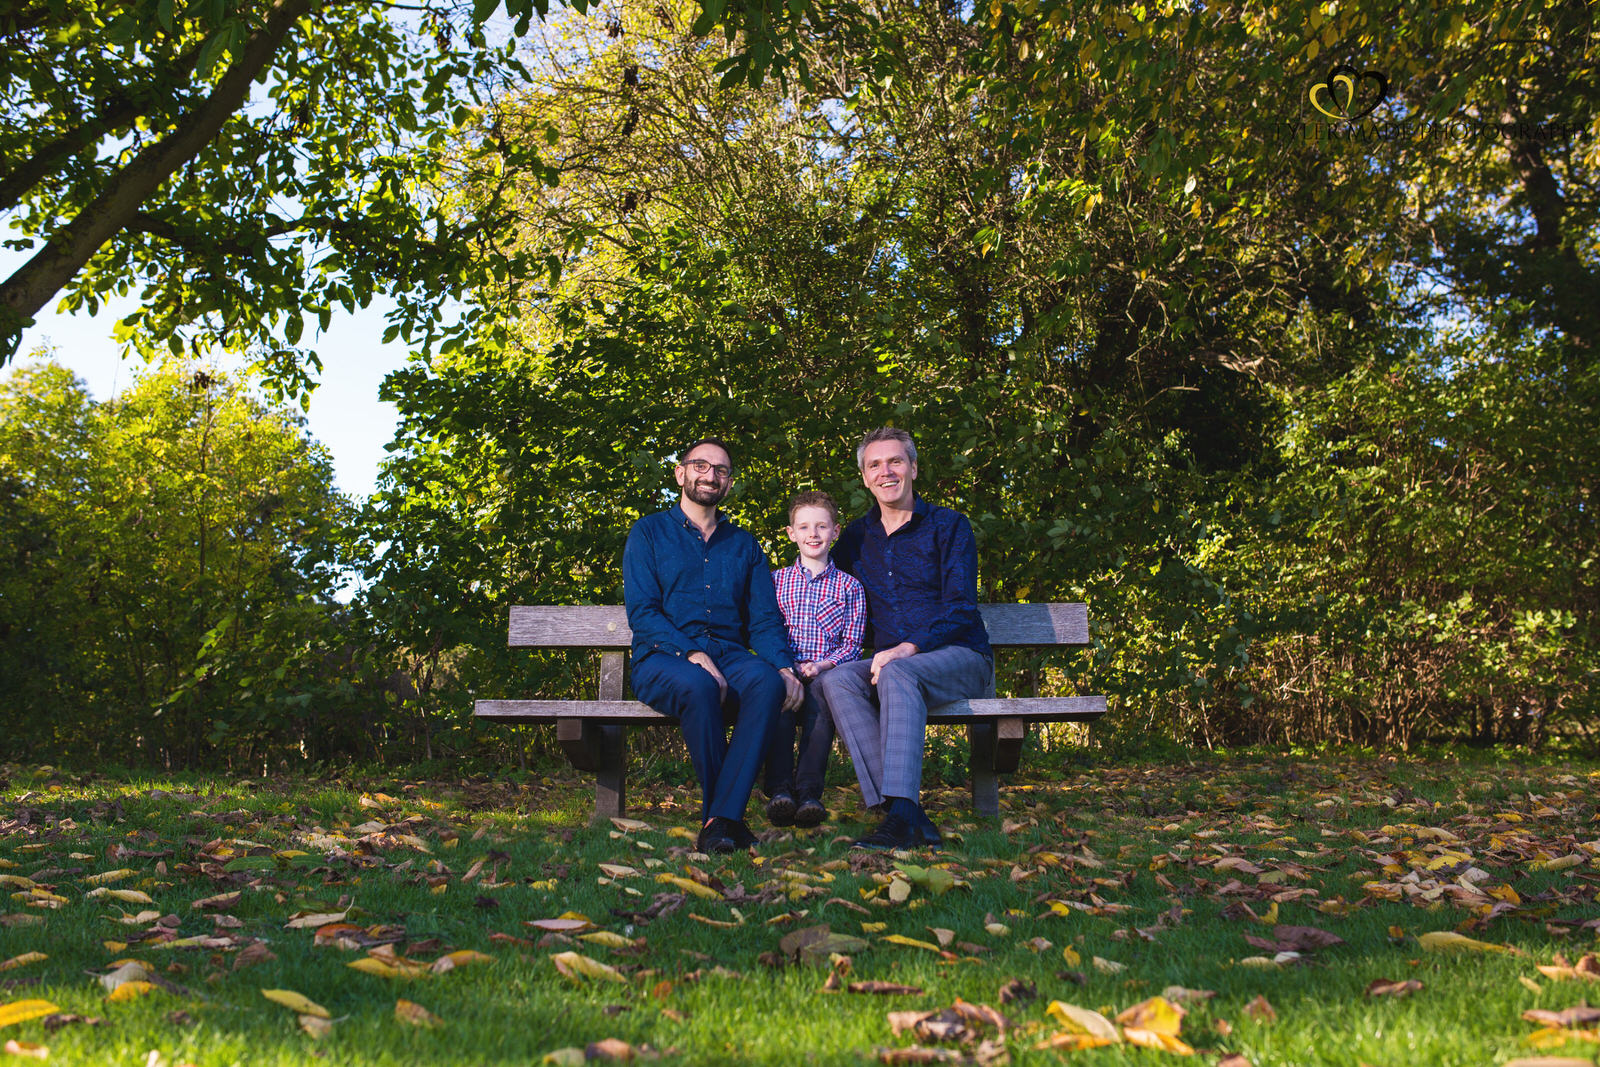 Boy and two dads sitting on a park bench